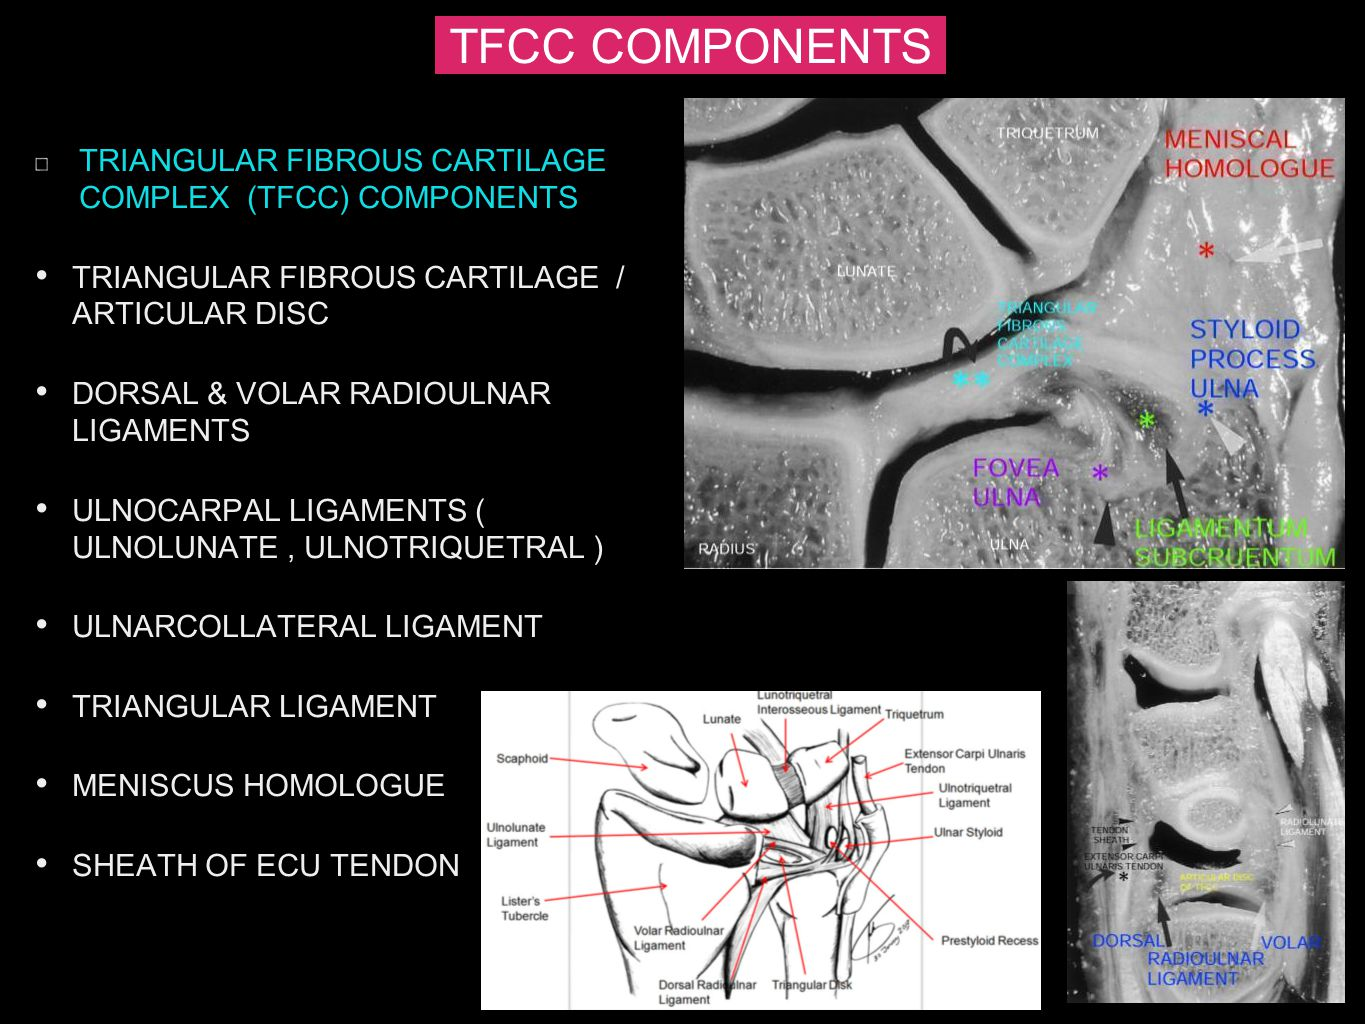 TFCC COMPONENTS TRIANGULAR FIBROUS CARTILAGE COMPLEX (TFCC) COMPONENTS